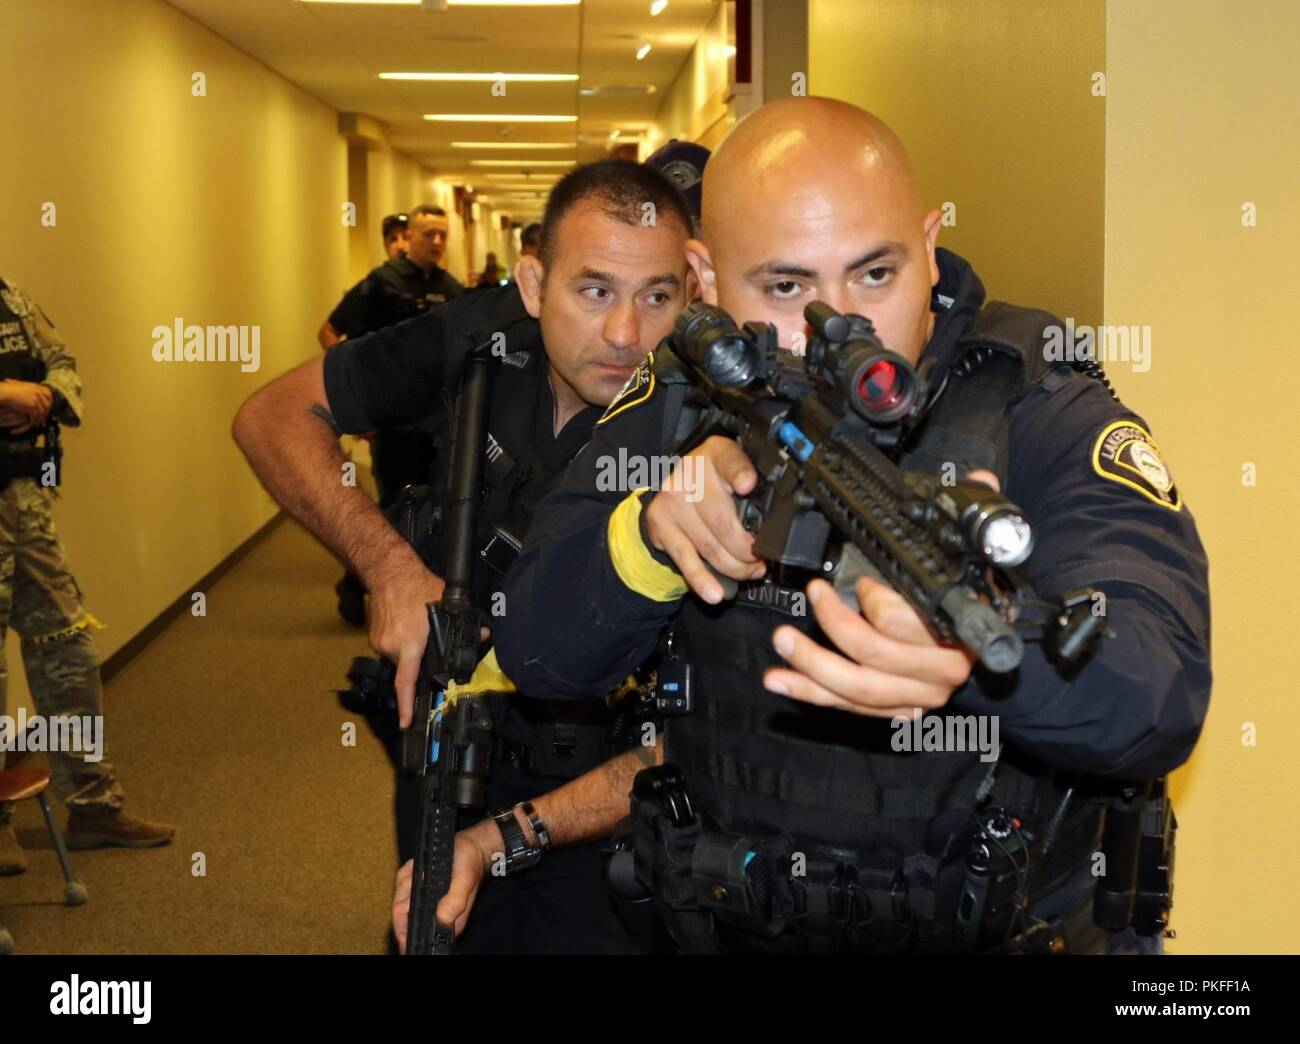 Officer David Maulen of Lakewood Police Department trains on